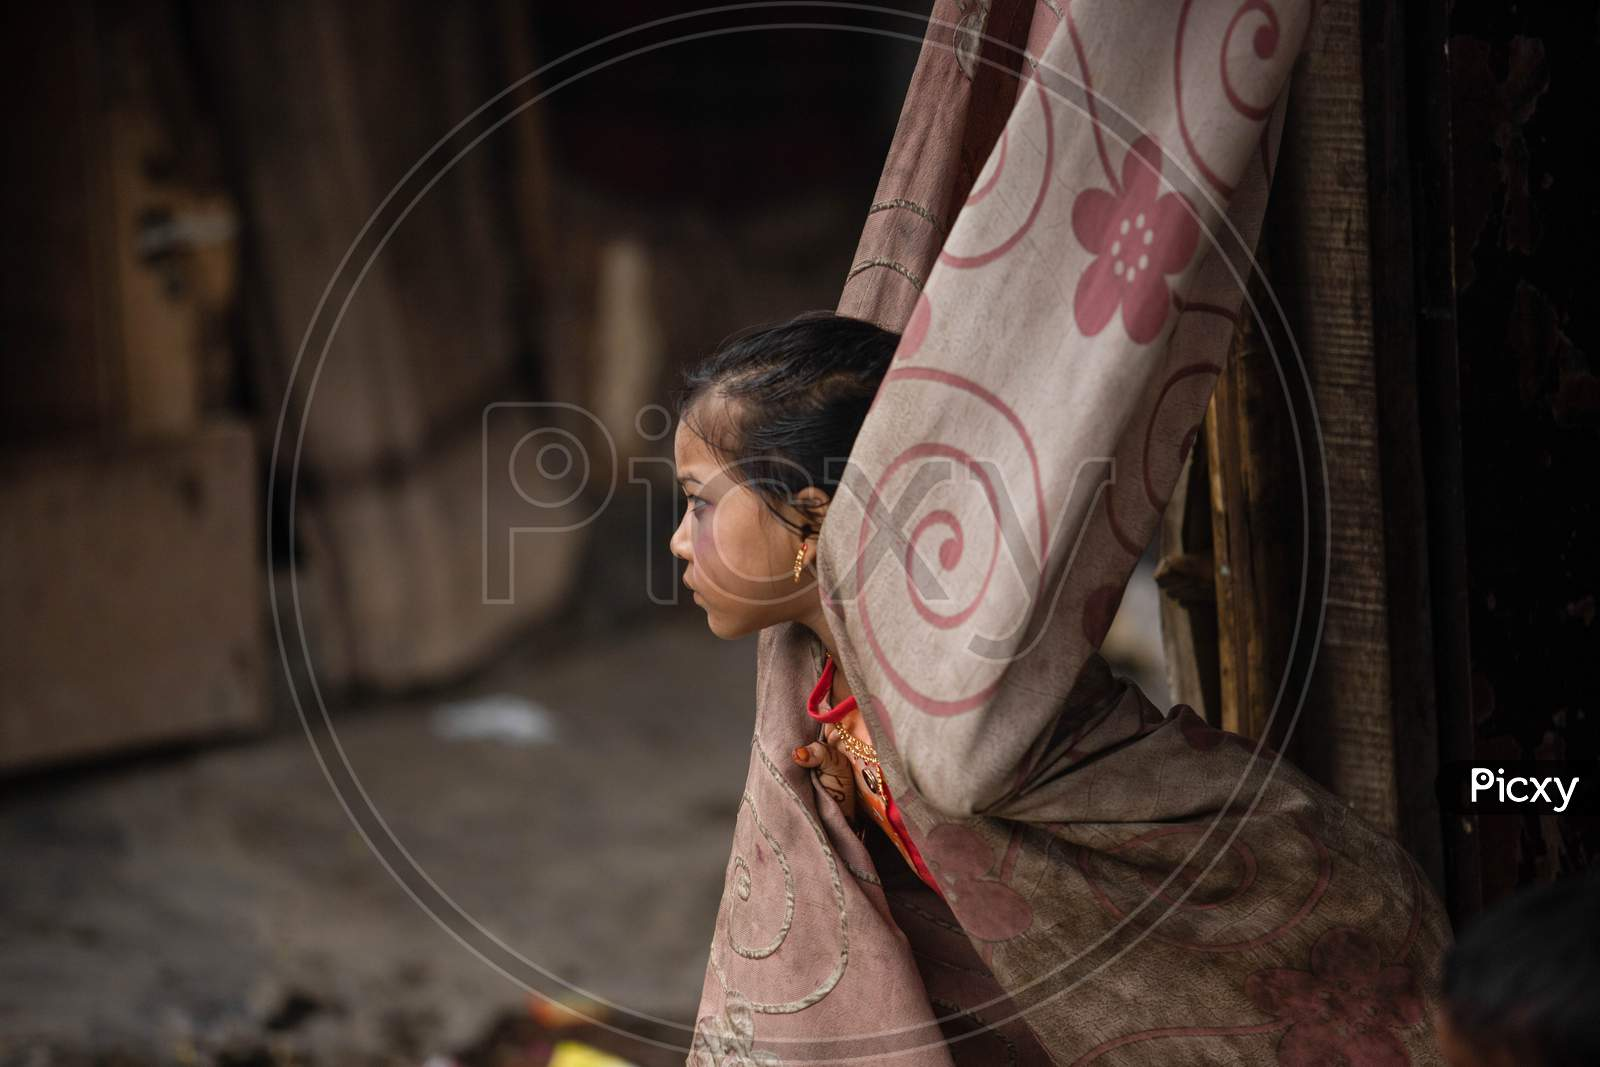 A Rohingya refugee girl wear new clothes and make up during Eid Al-Adha (Feast of Sacrifice) festival at a camp on the outskirts of New Delhi, India on August 1, 2020.